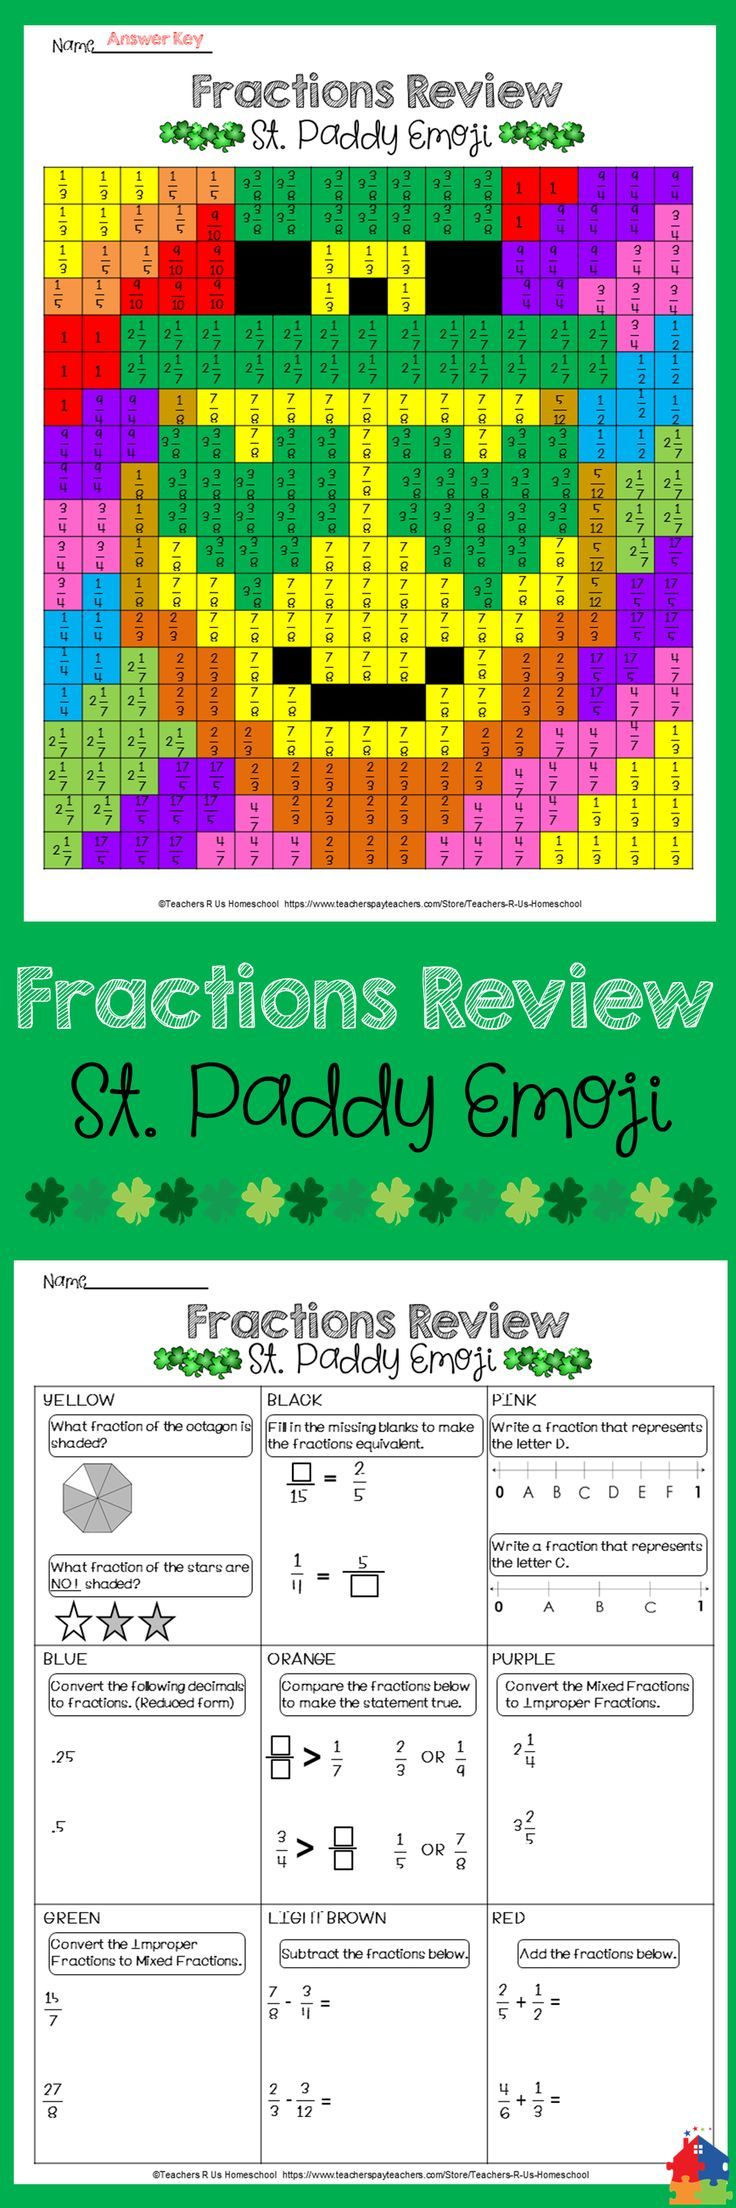 St. Patricku0026#39;s Day Emoji [Math Fraction Review]